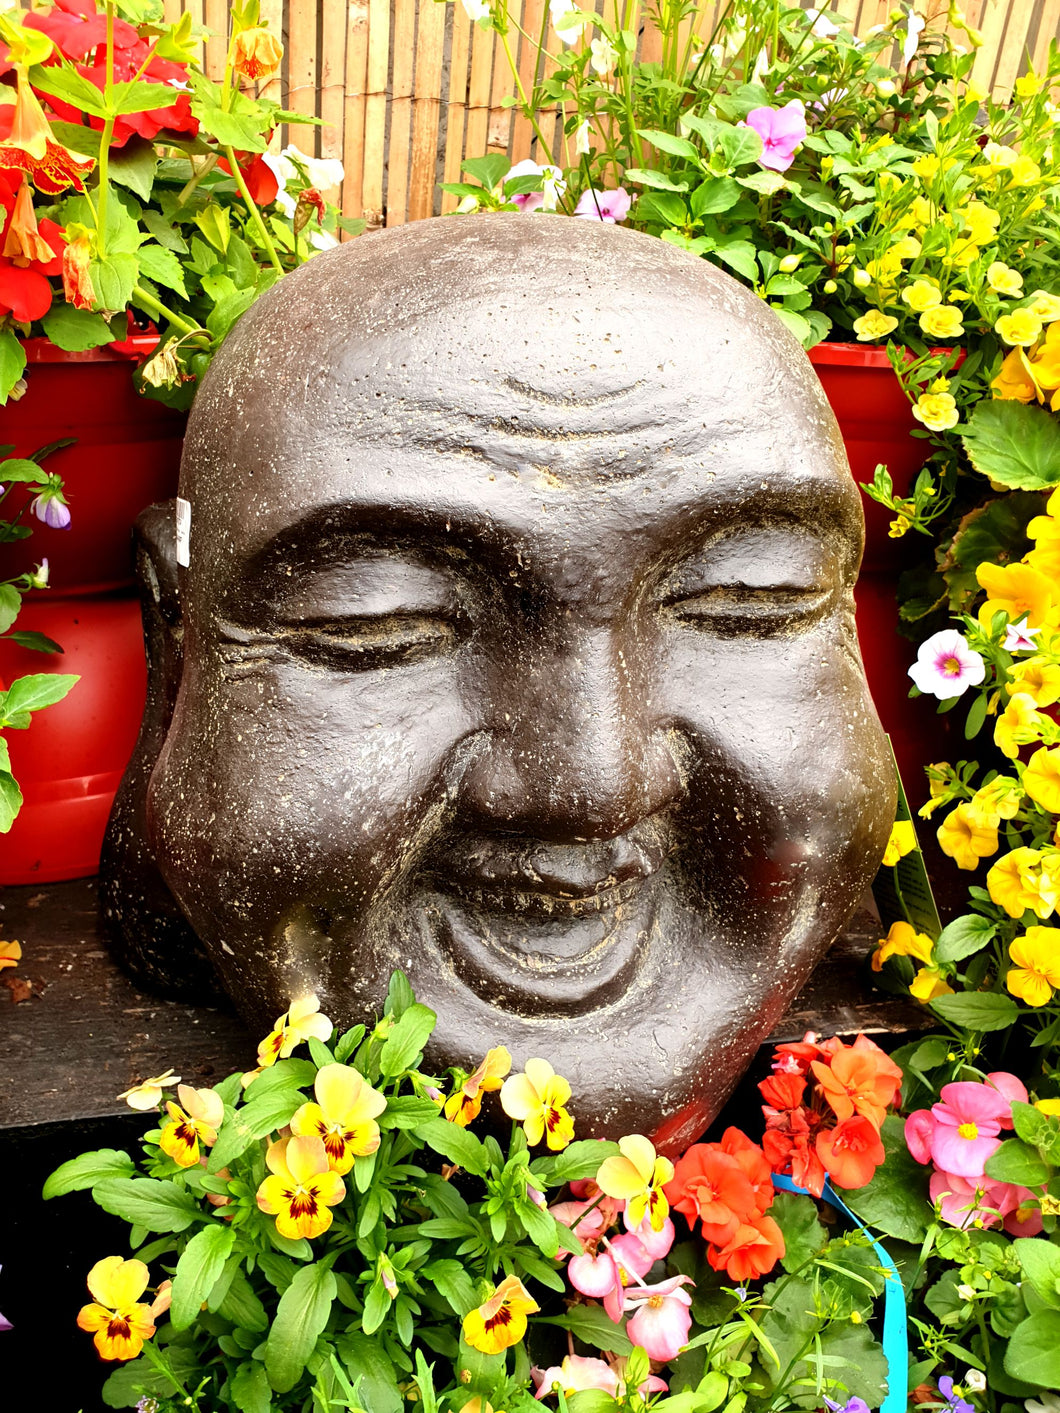 Laughing Buddha head